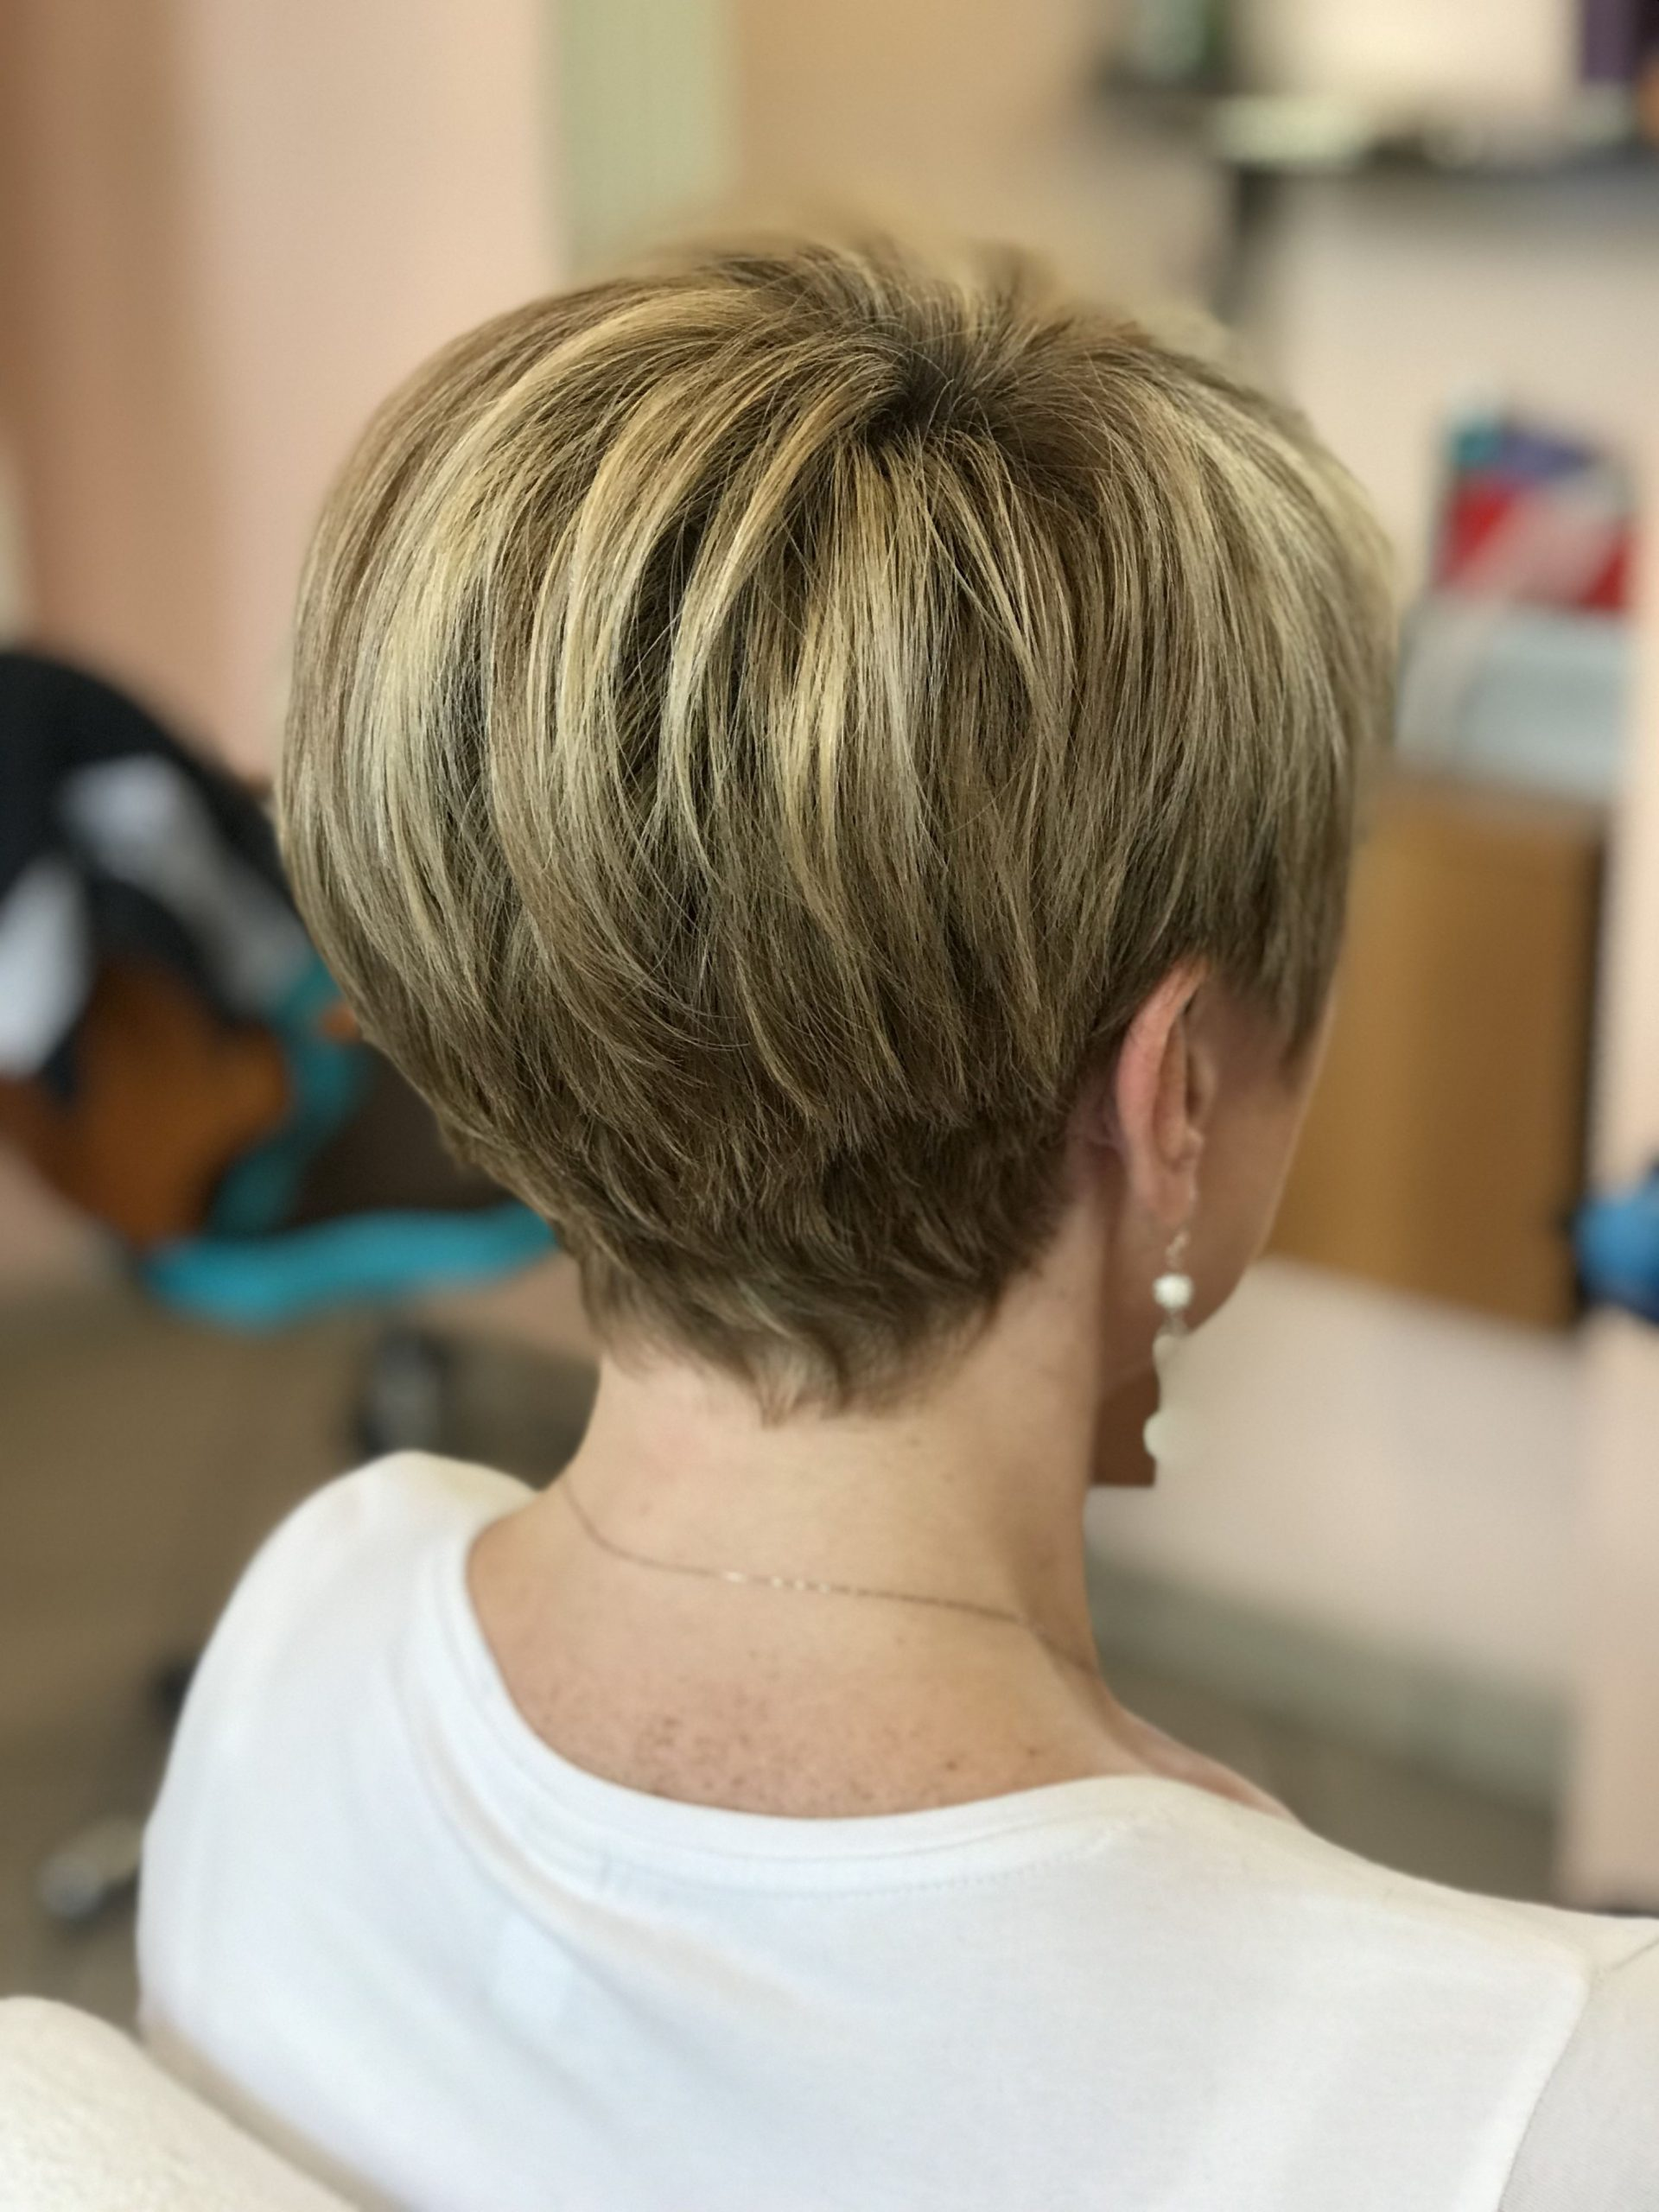 Pin On Hair 10 Stacked Pixie Cut